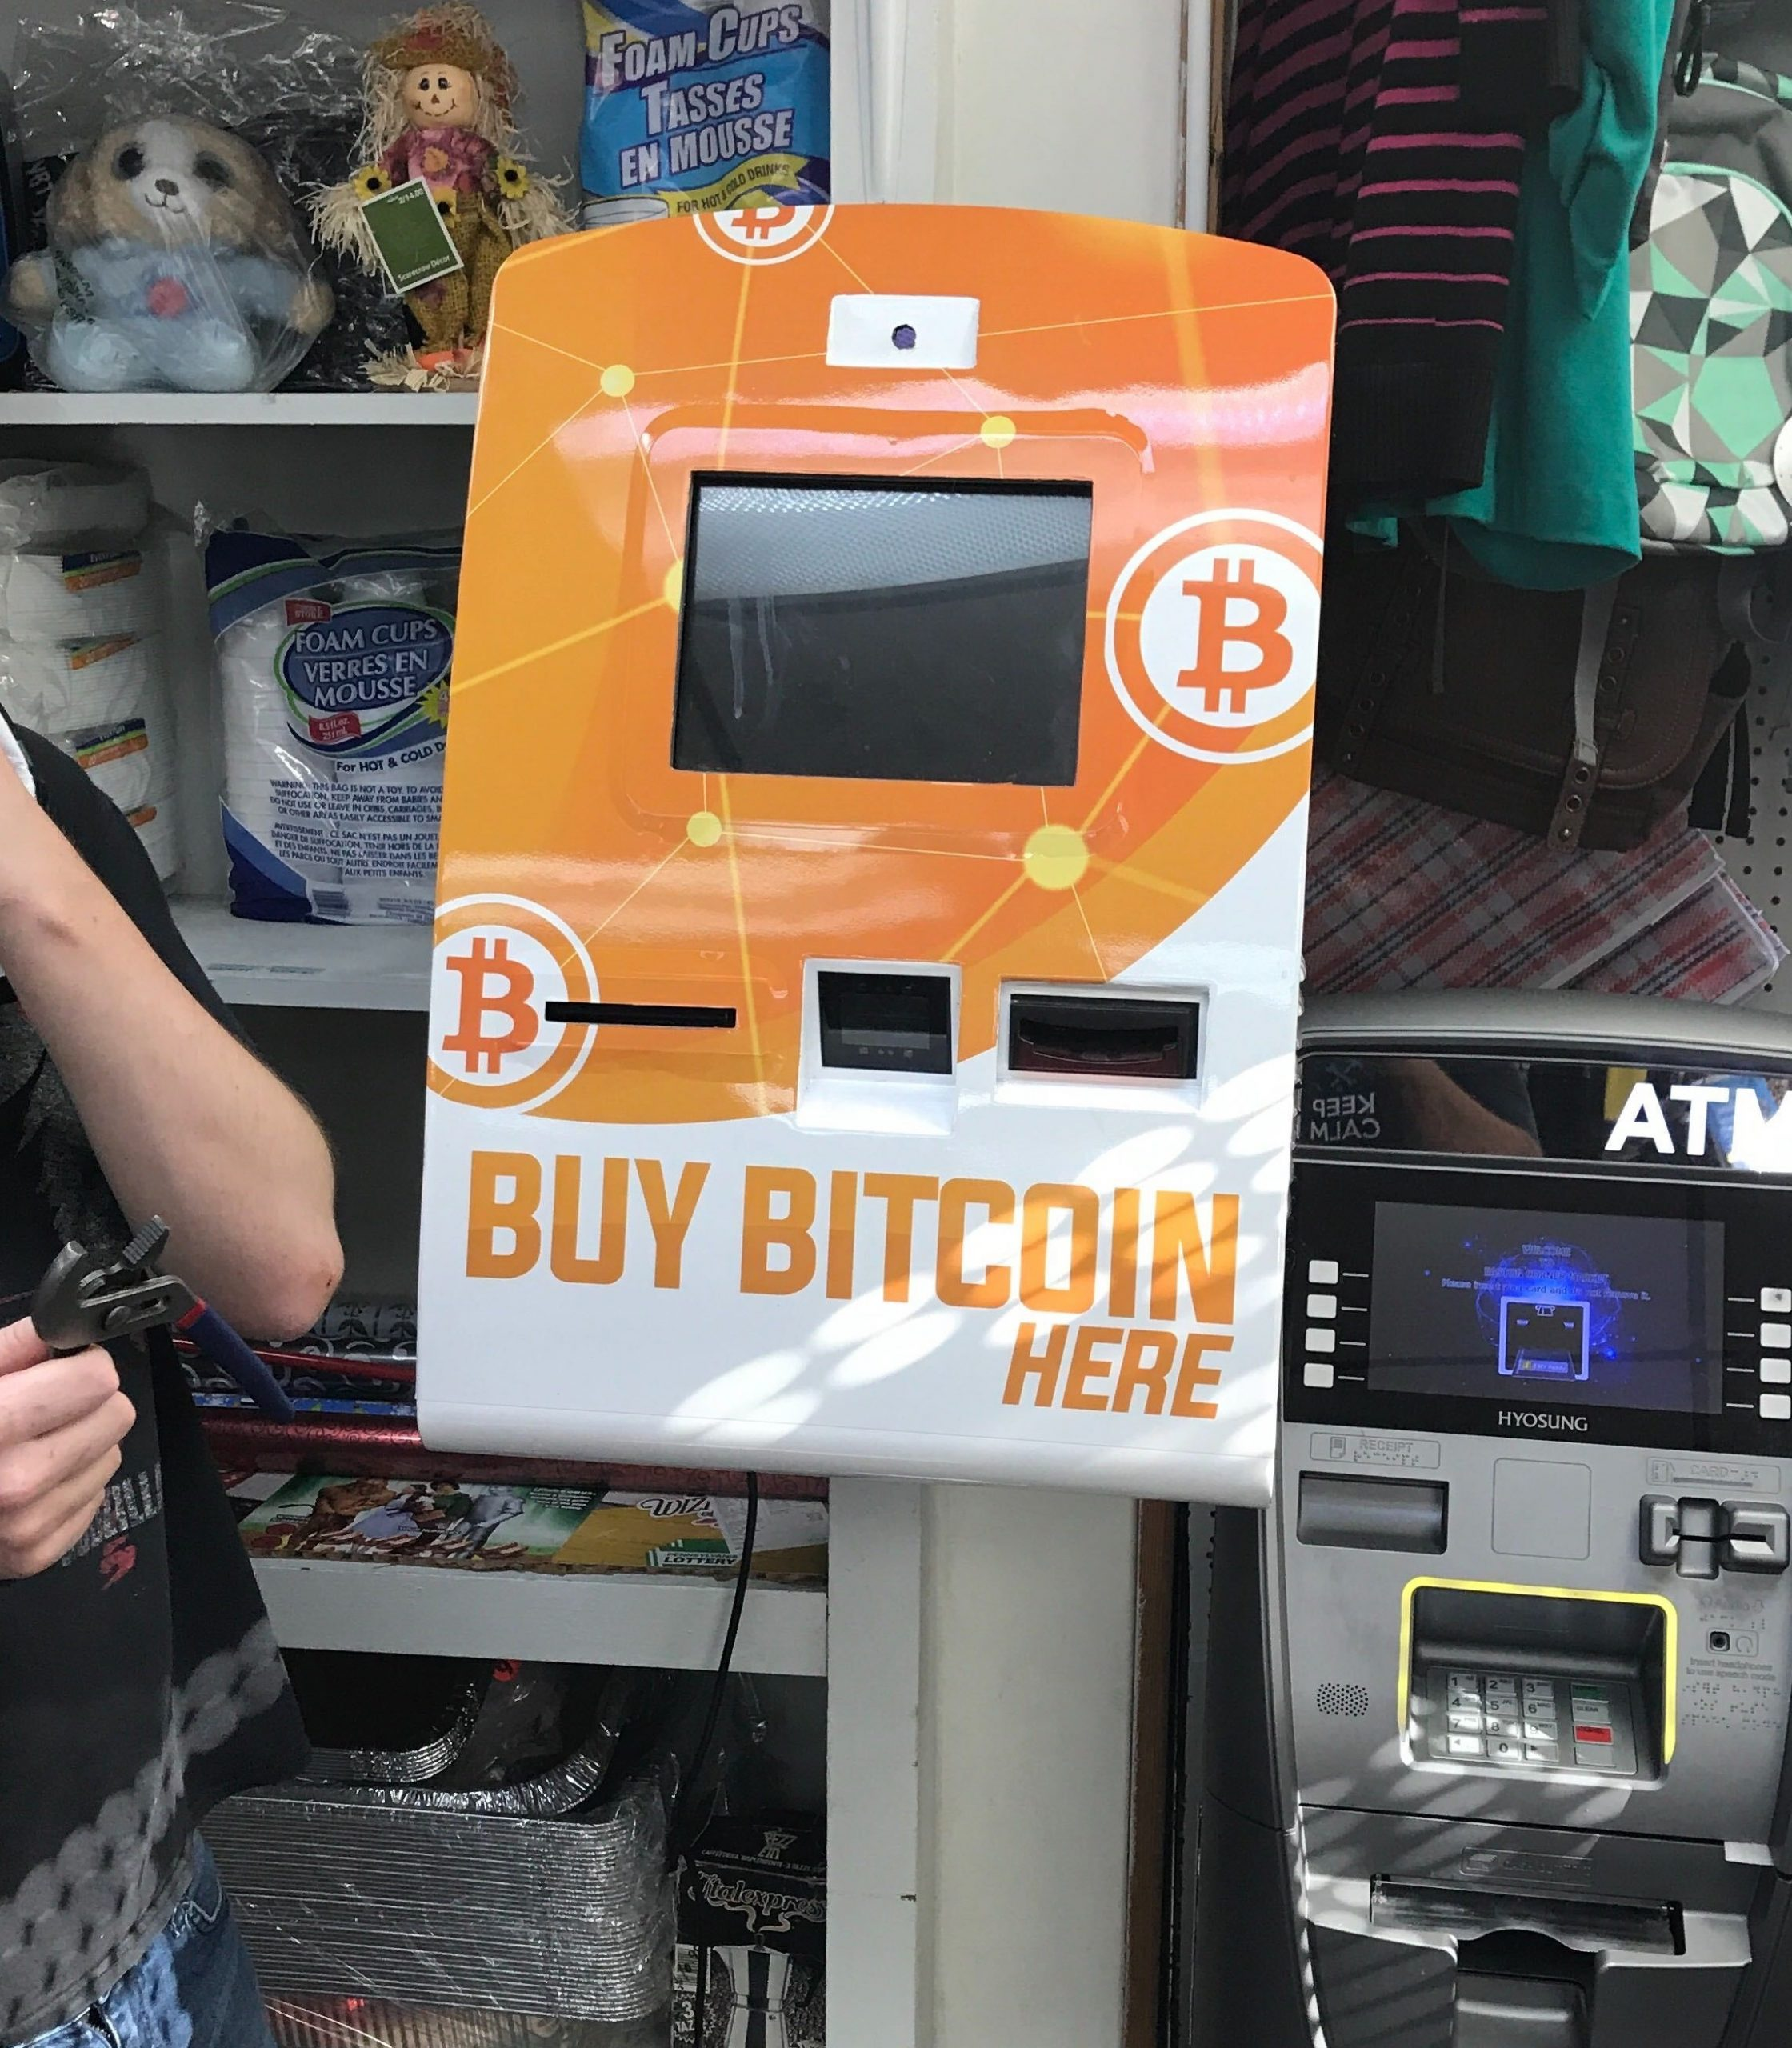 Bitcoin ATM Easton, 359 Northampton St, Easton by Hippo Bitcoin ATM - Hippo Kiosks for buying Bitcoin